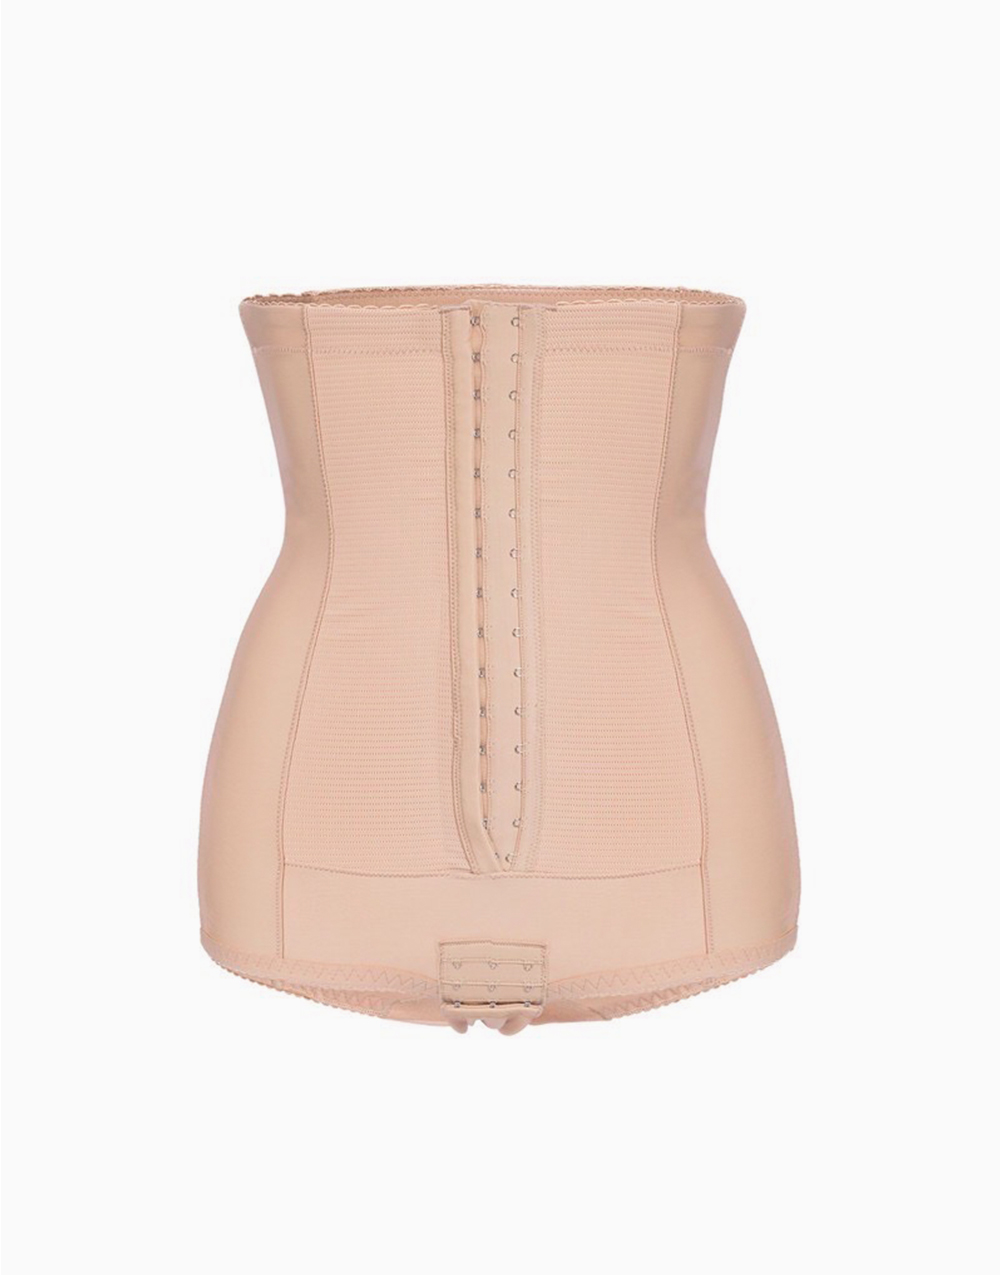 DIANNE Post Partum Recovery Shapewear - Nude by Shapewear Solutions | XL